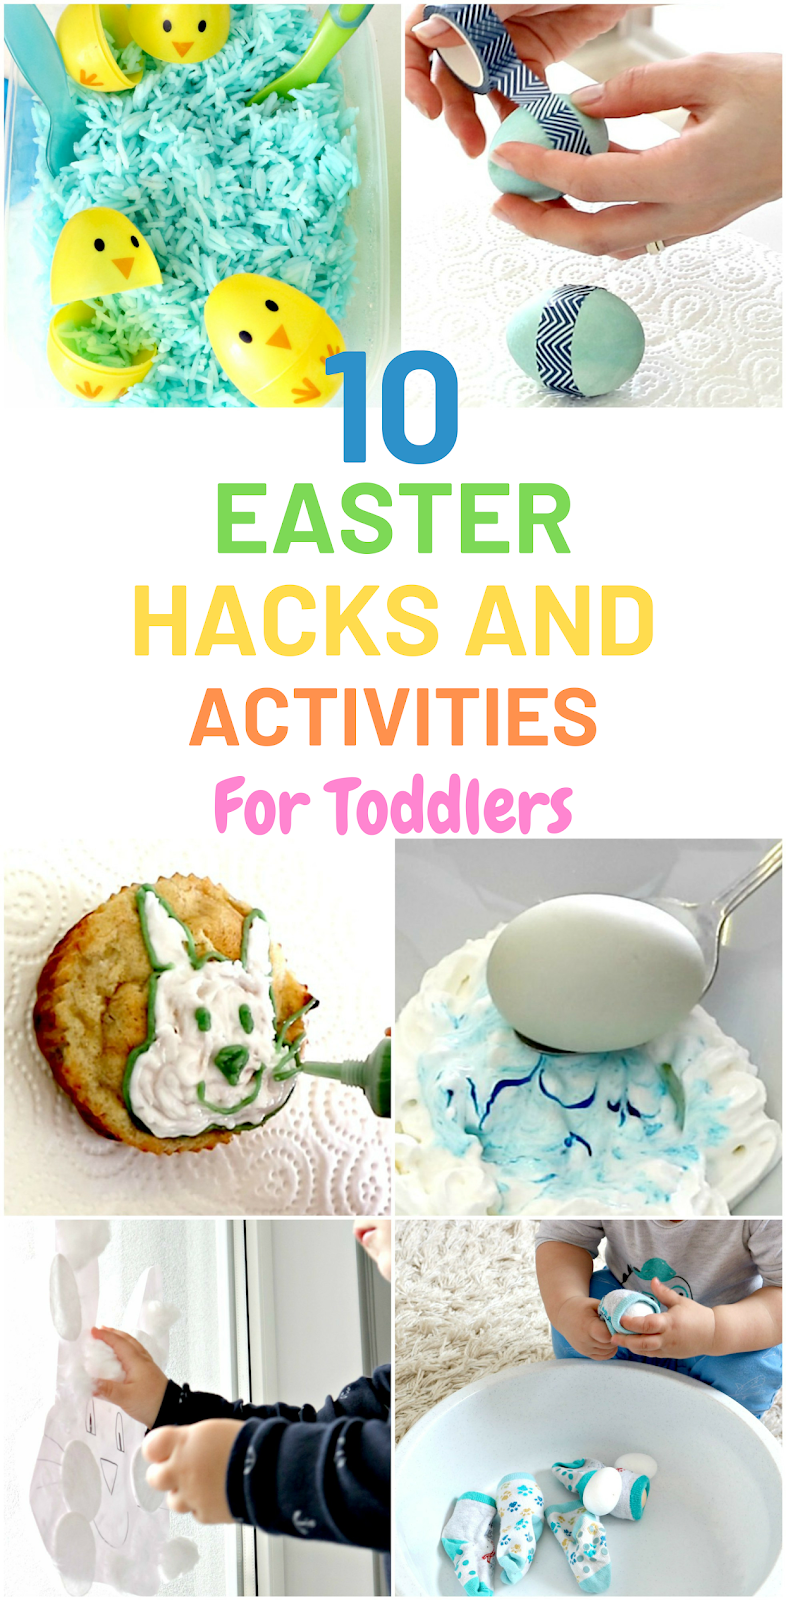 10 easter hacks and activities for toddlers